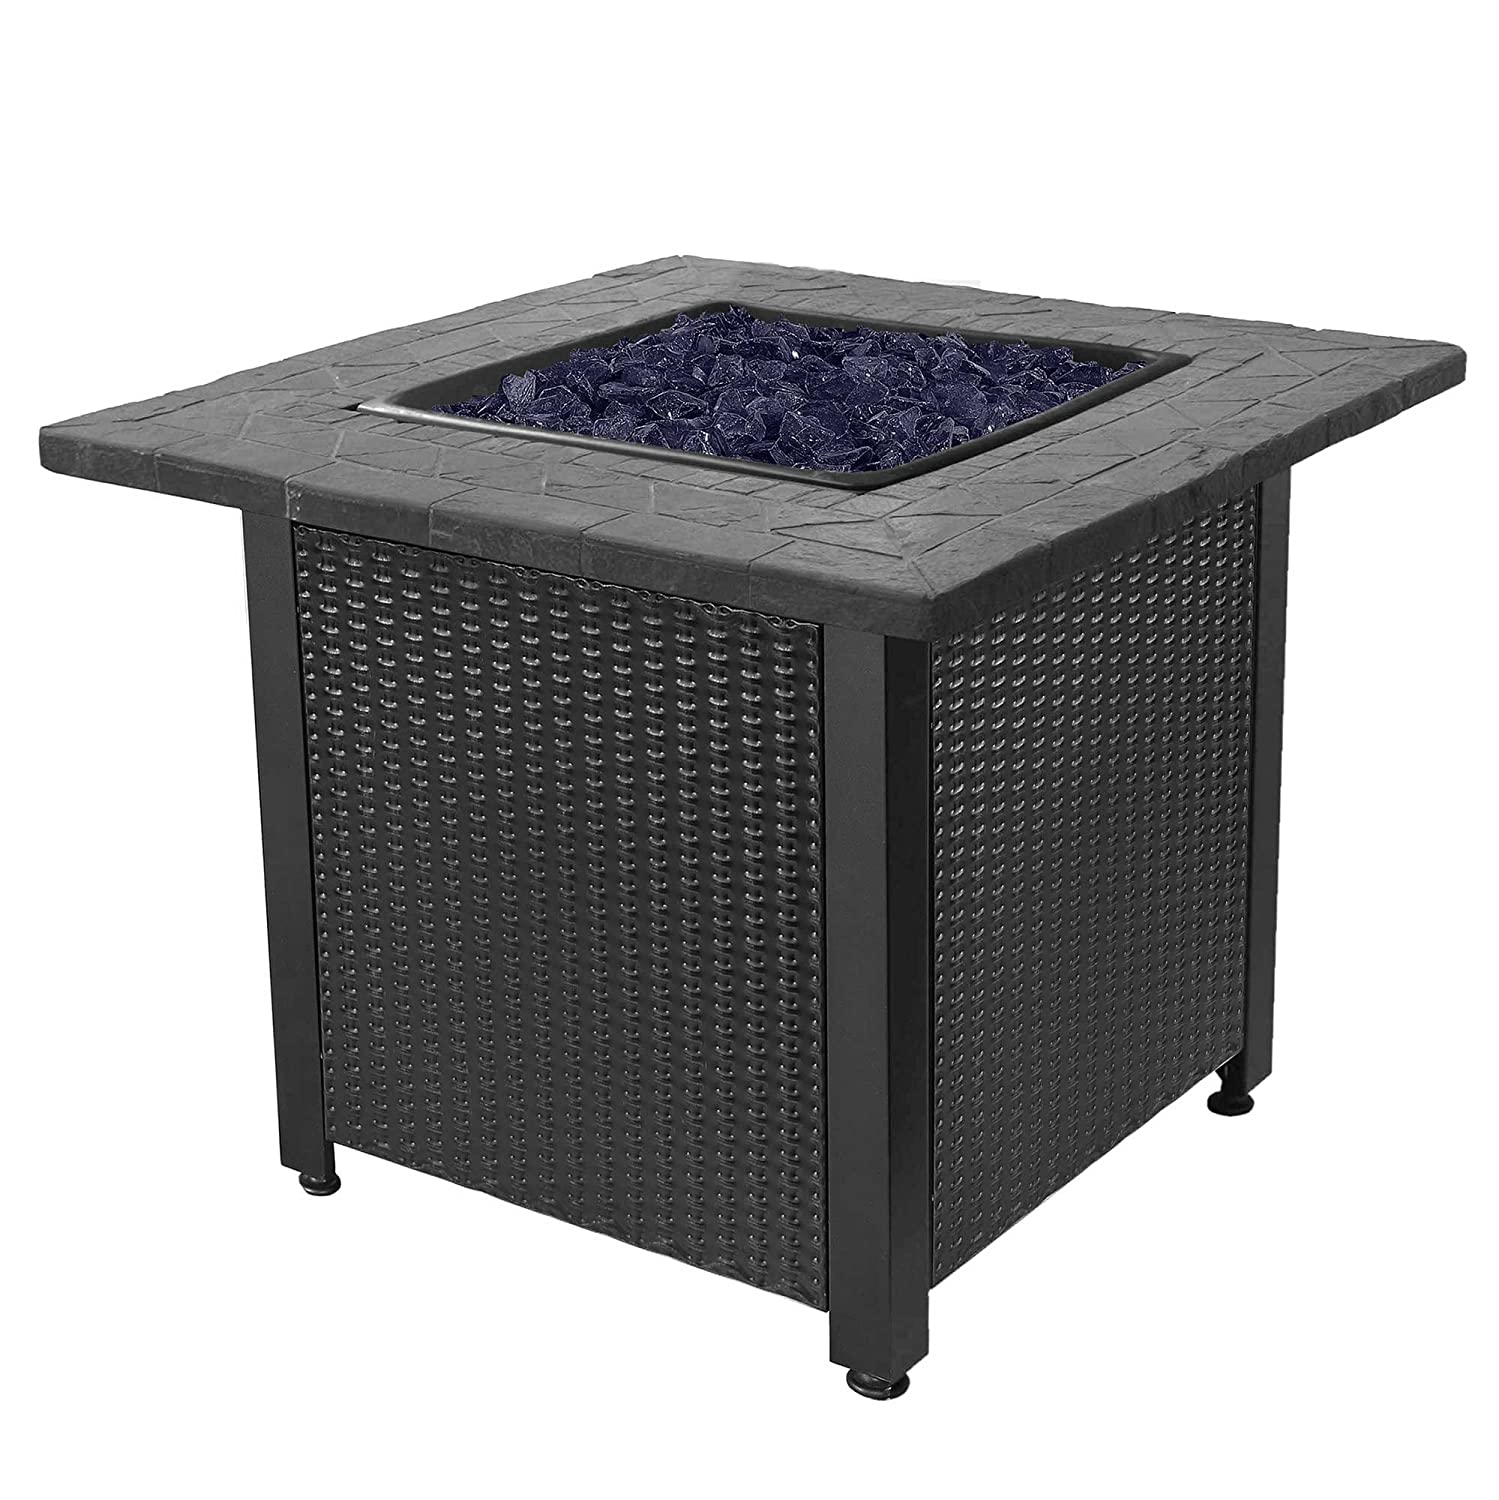 Endless Summer GAD1401GB LP Gas Outdoor Fire Table, Multi Color